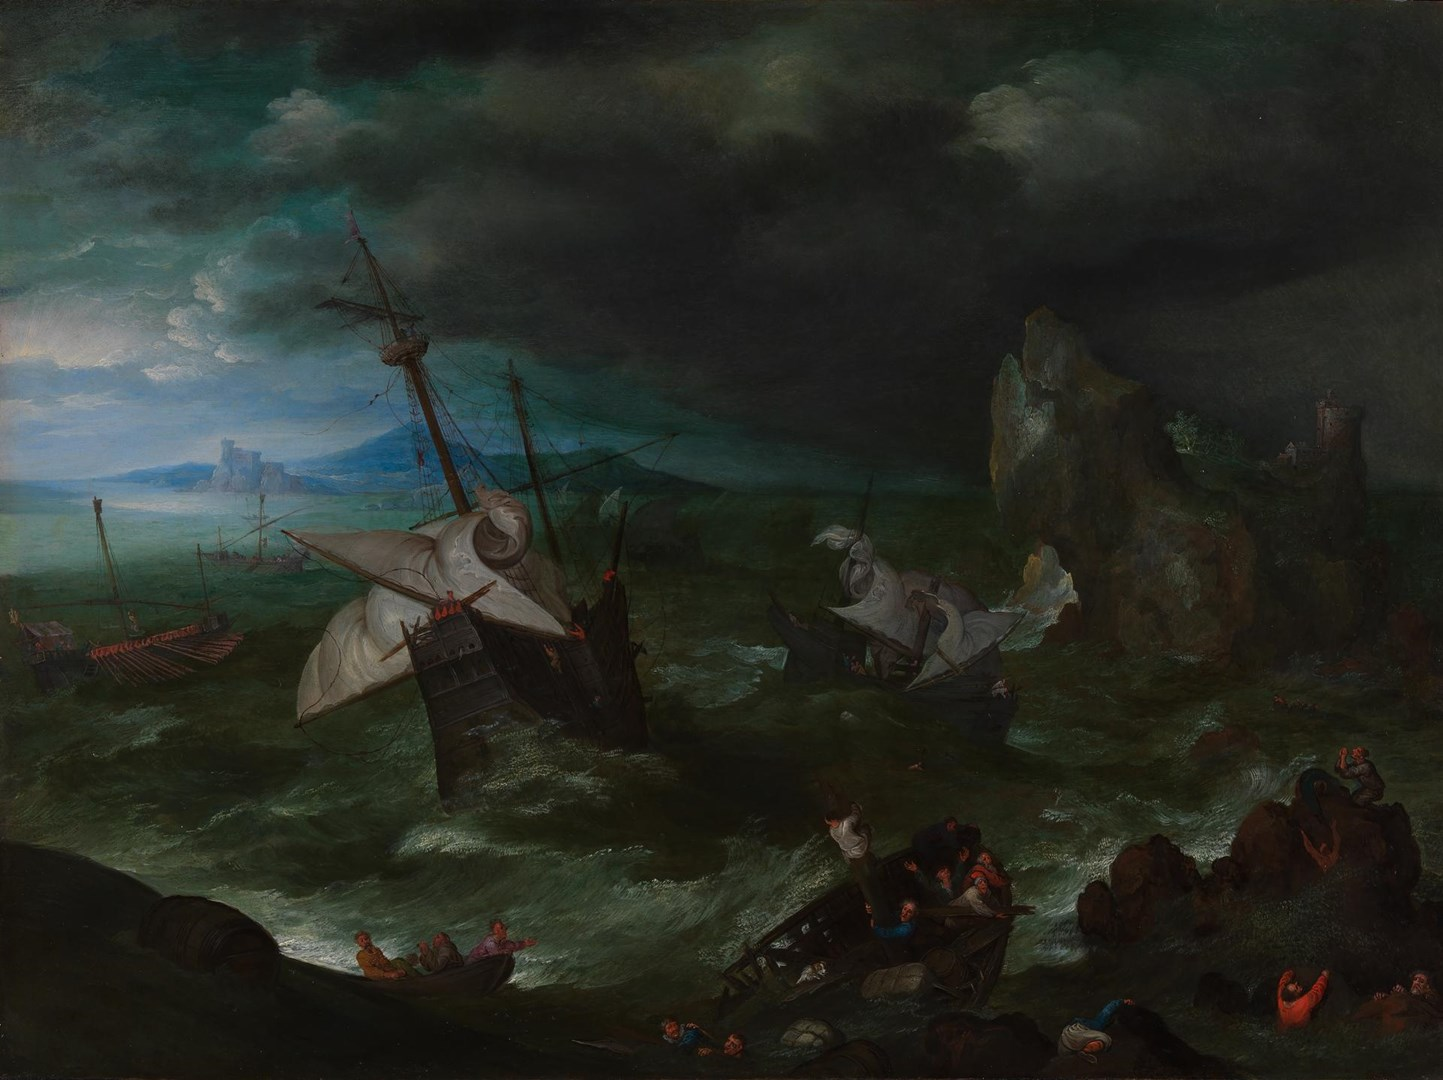 A Sea Storm by Jan Brueghel the Elder